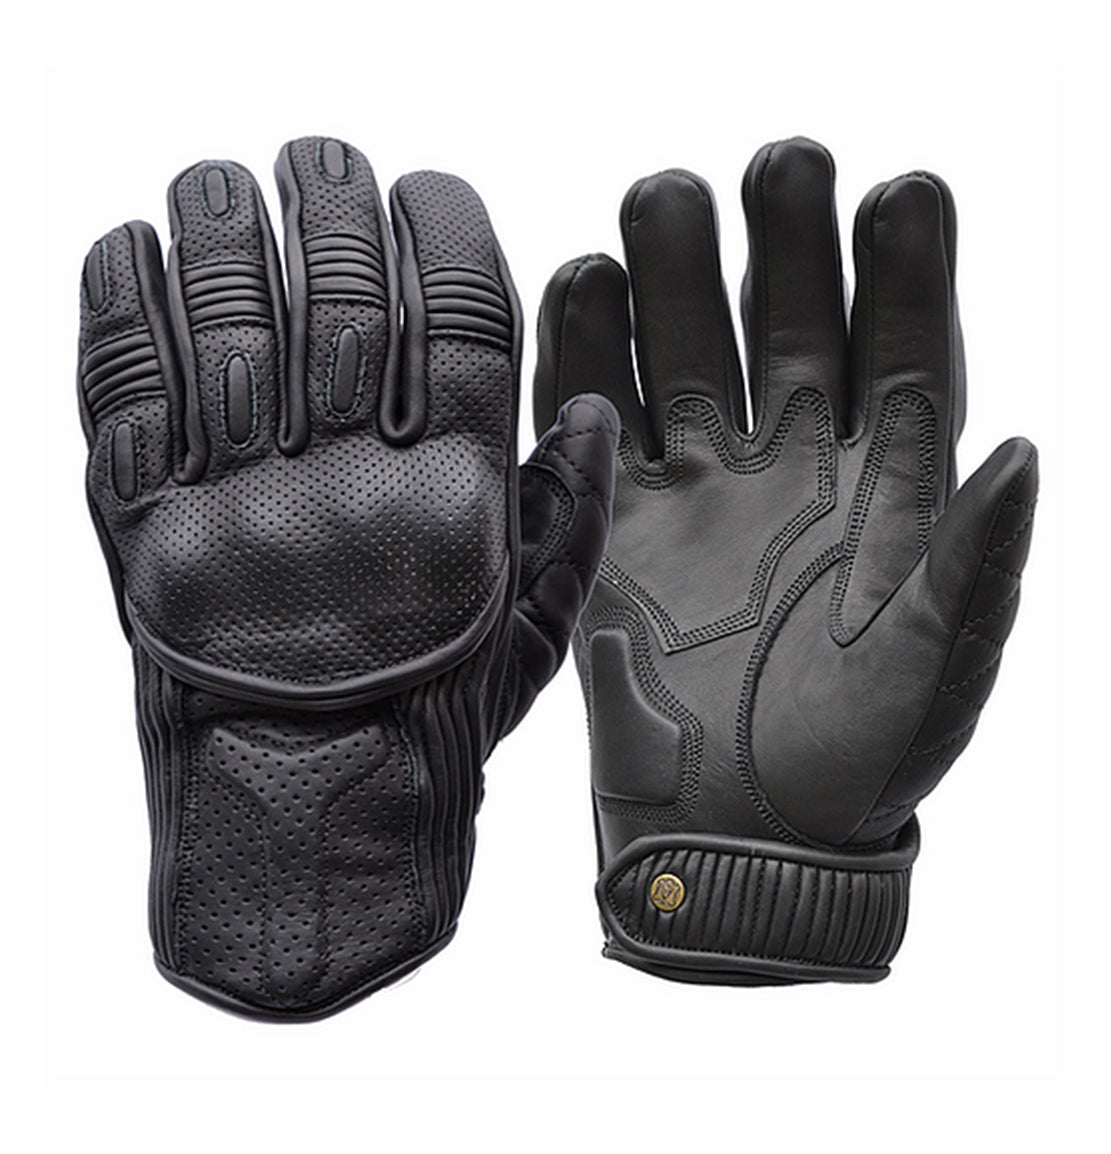 black predator gloves